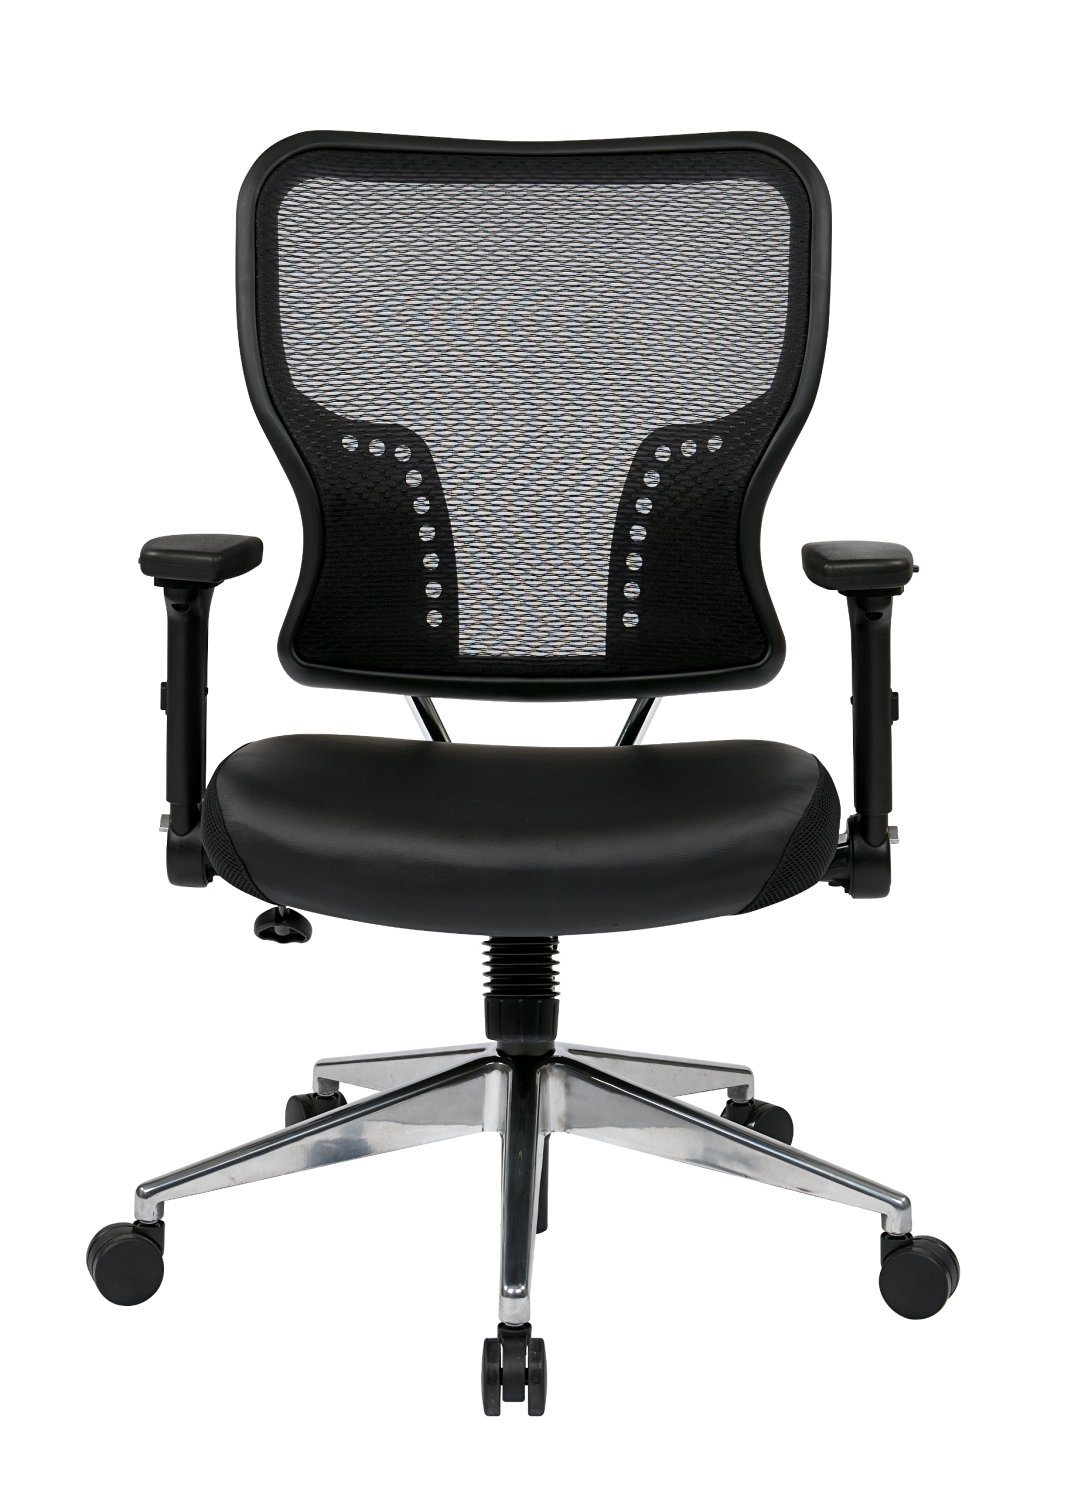 Space Seating AirGrid Back and Padded Eco Leather Seat with 4-Way Adjustable Flip Arms, Built-In Lumbar Support and Polished Aluminum Base